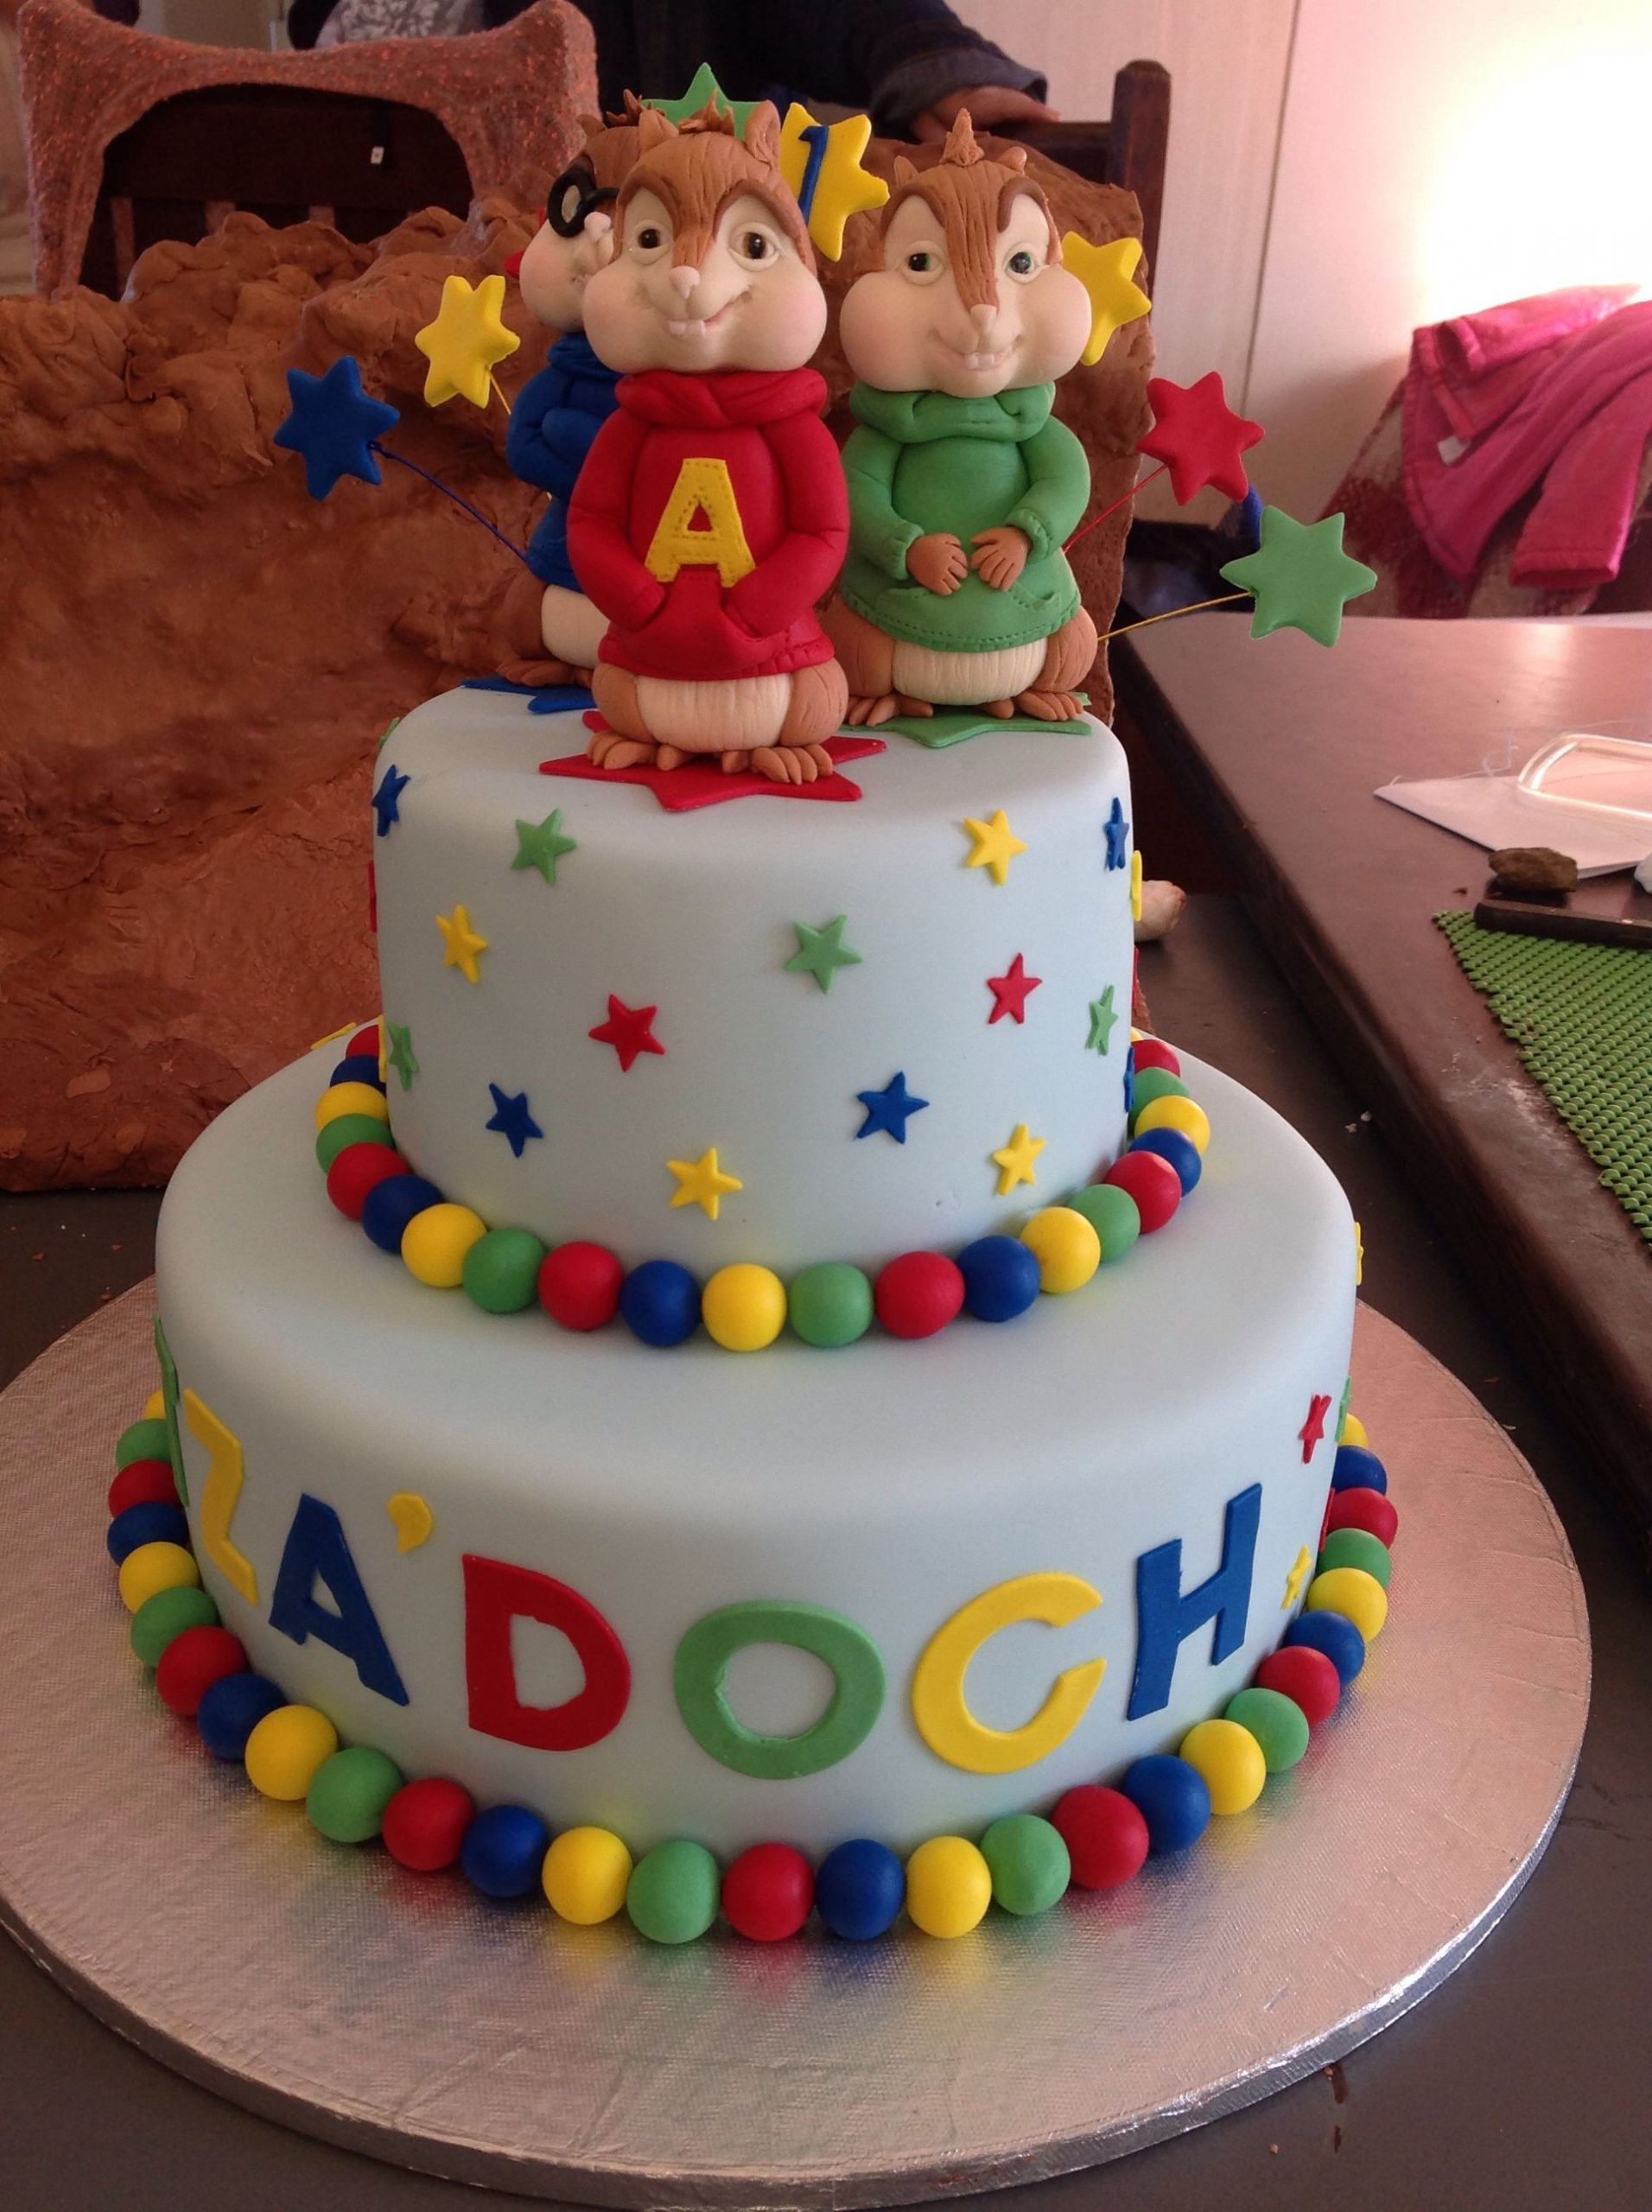 Alvin And The Chipmunks Birthday Cake  Alvin and the chipmunks